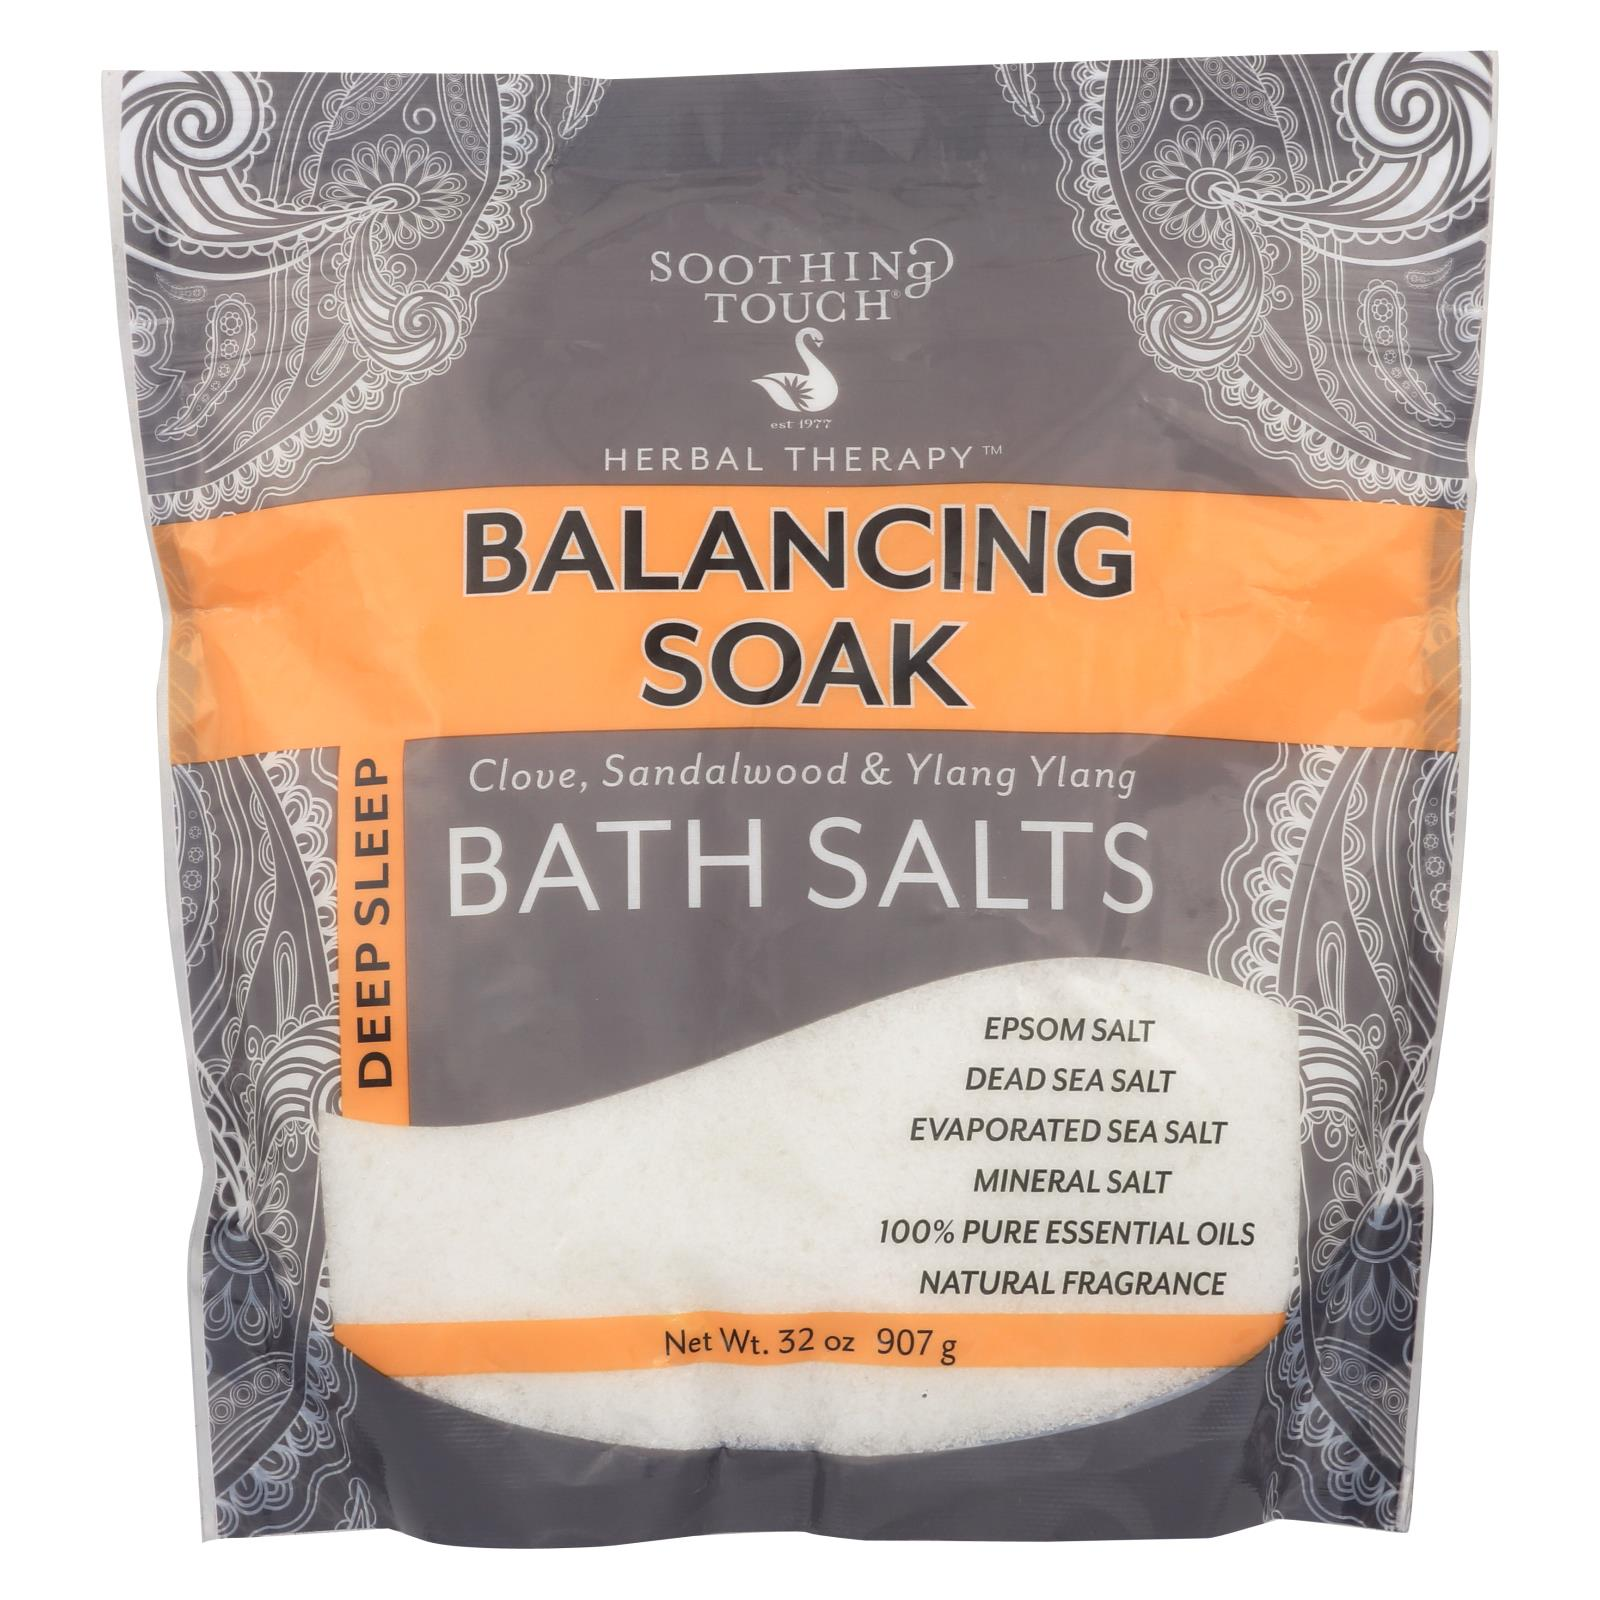 Buy Soothing Touch Bath Salts - Balancing Soak - 32 oz - Bubble Bath and Soaks from Veroeco.com